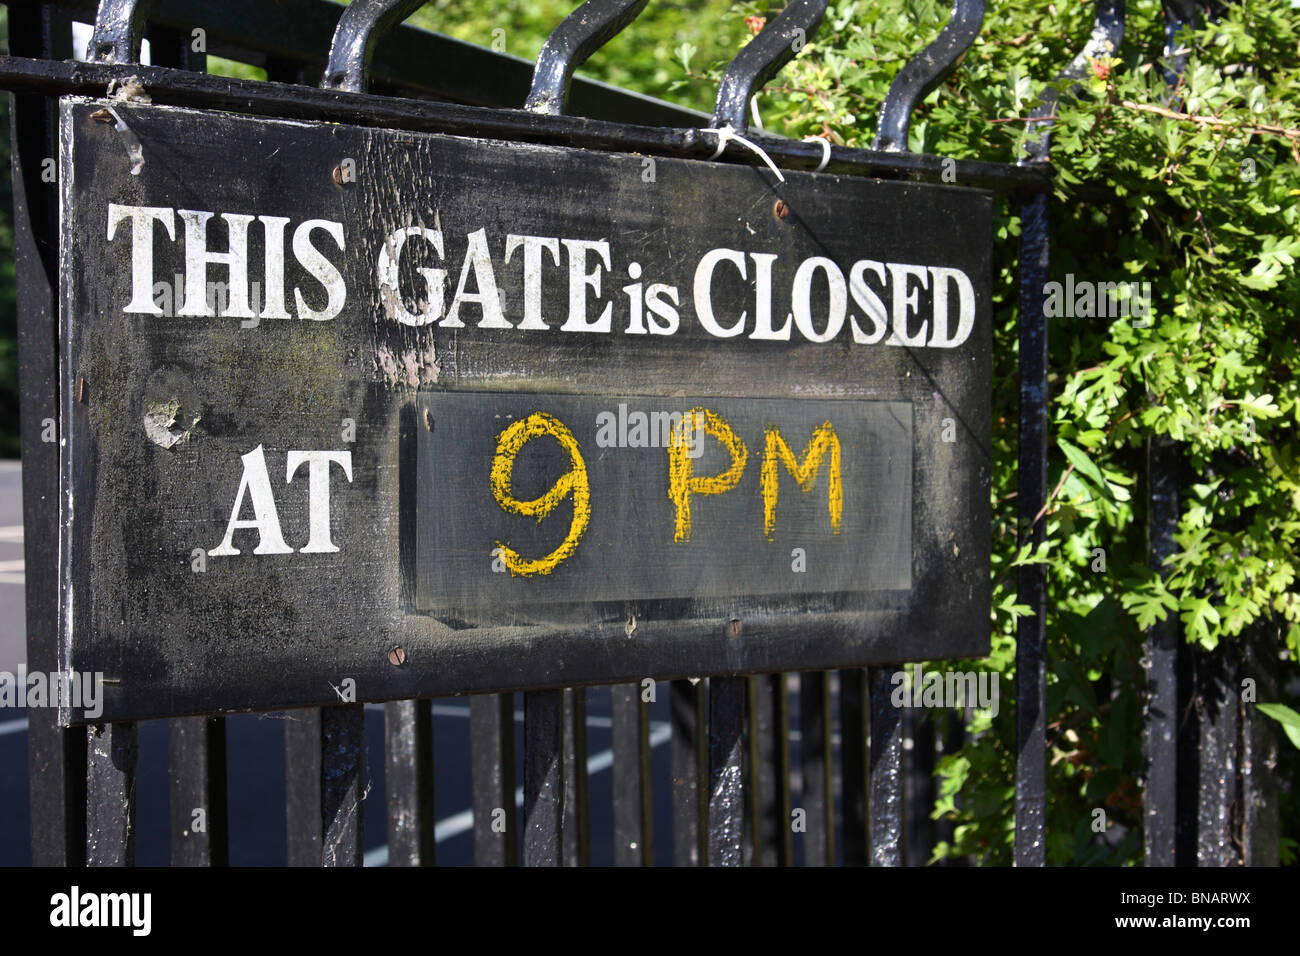 A sign on park gates in a U.K. city. - Stock Image